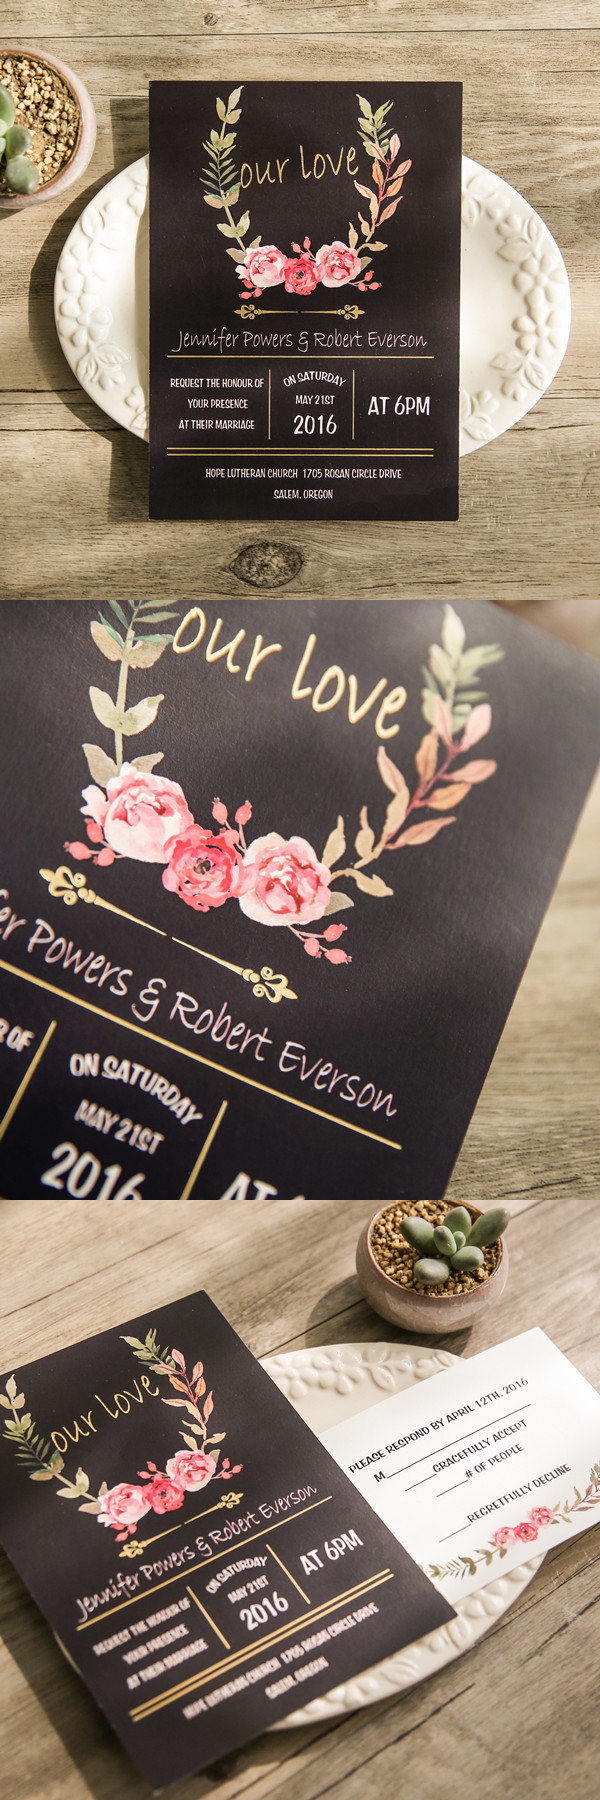 bohemian black floral gold foil our love wedding invitation